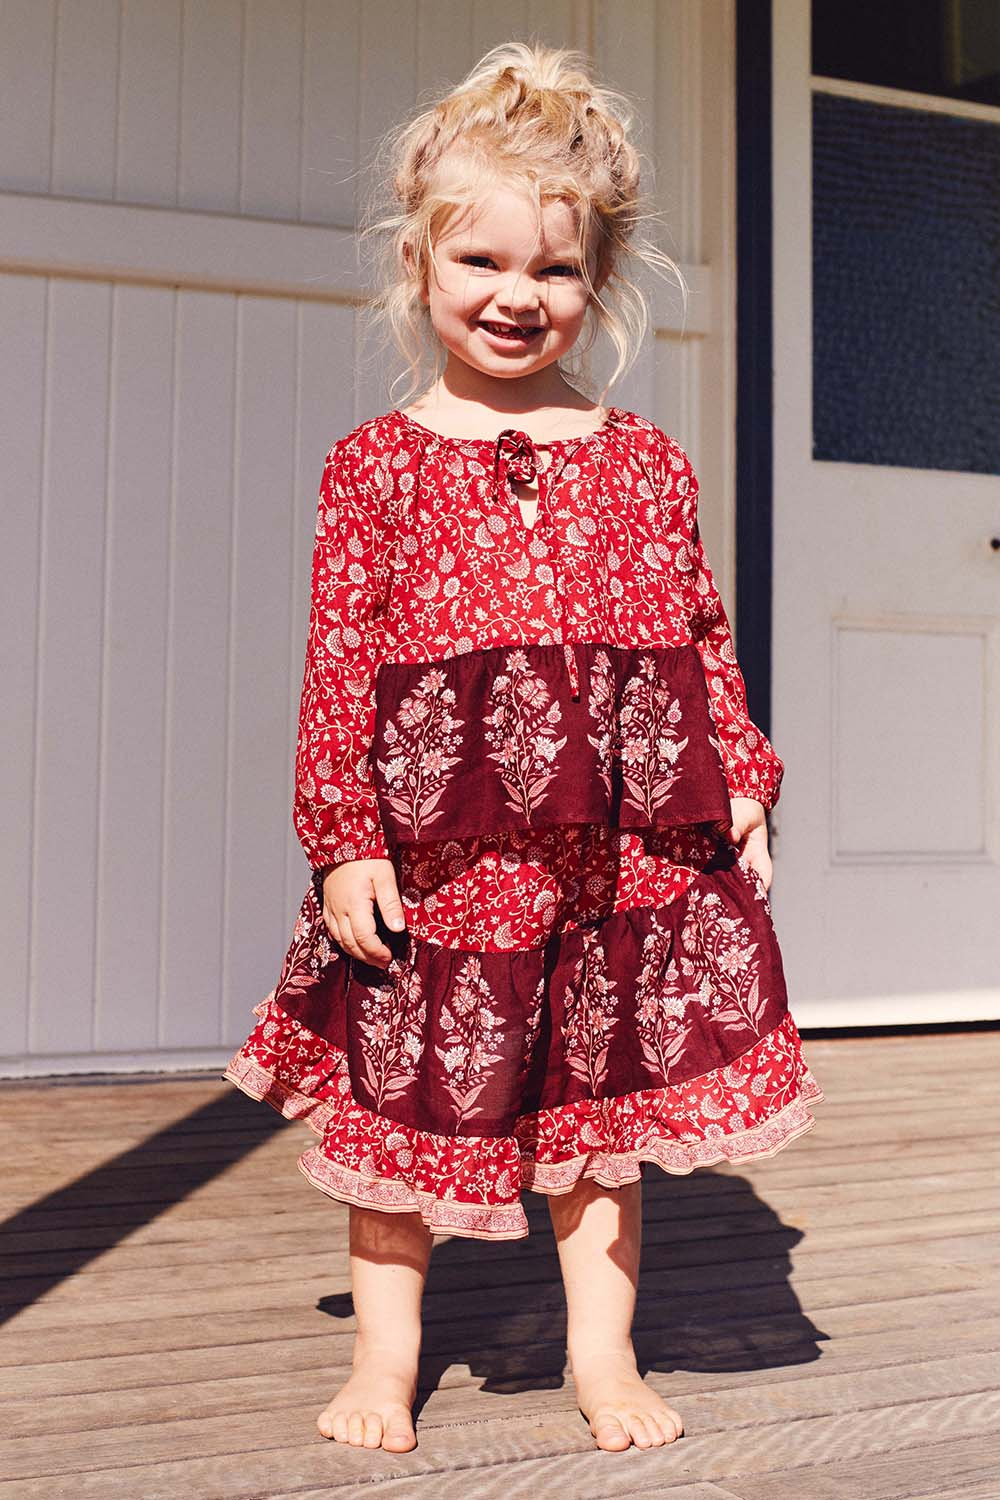 Wisteria Toddler Skirt in Crimson